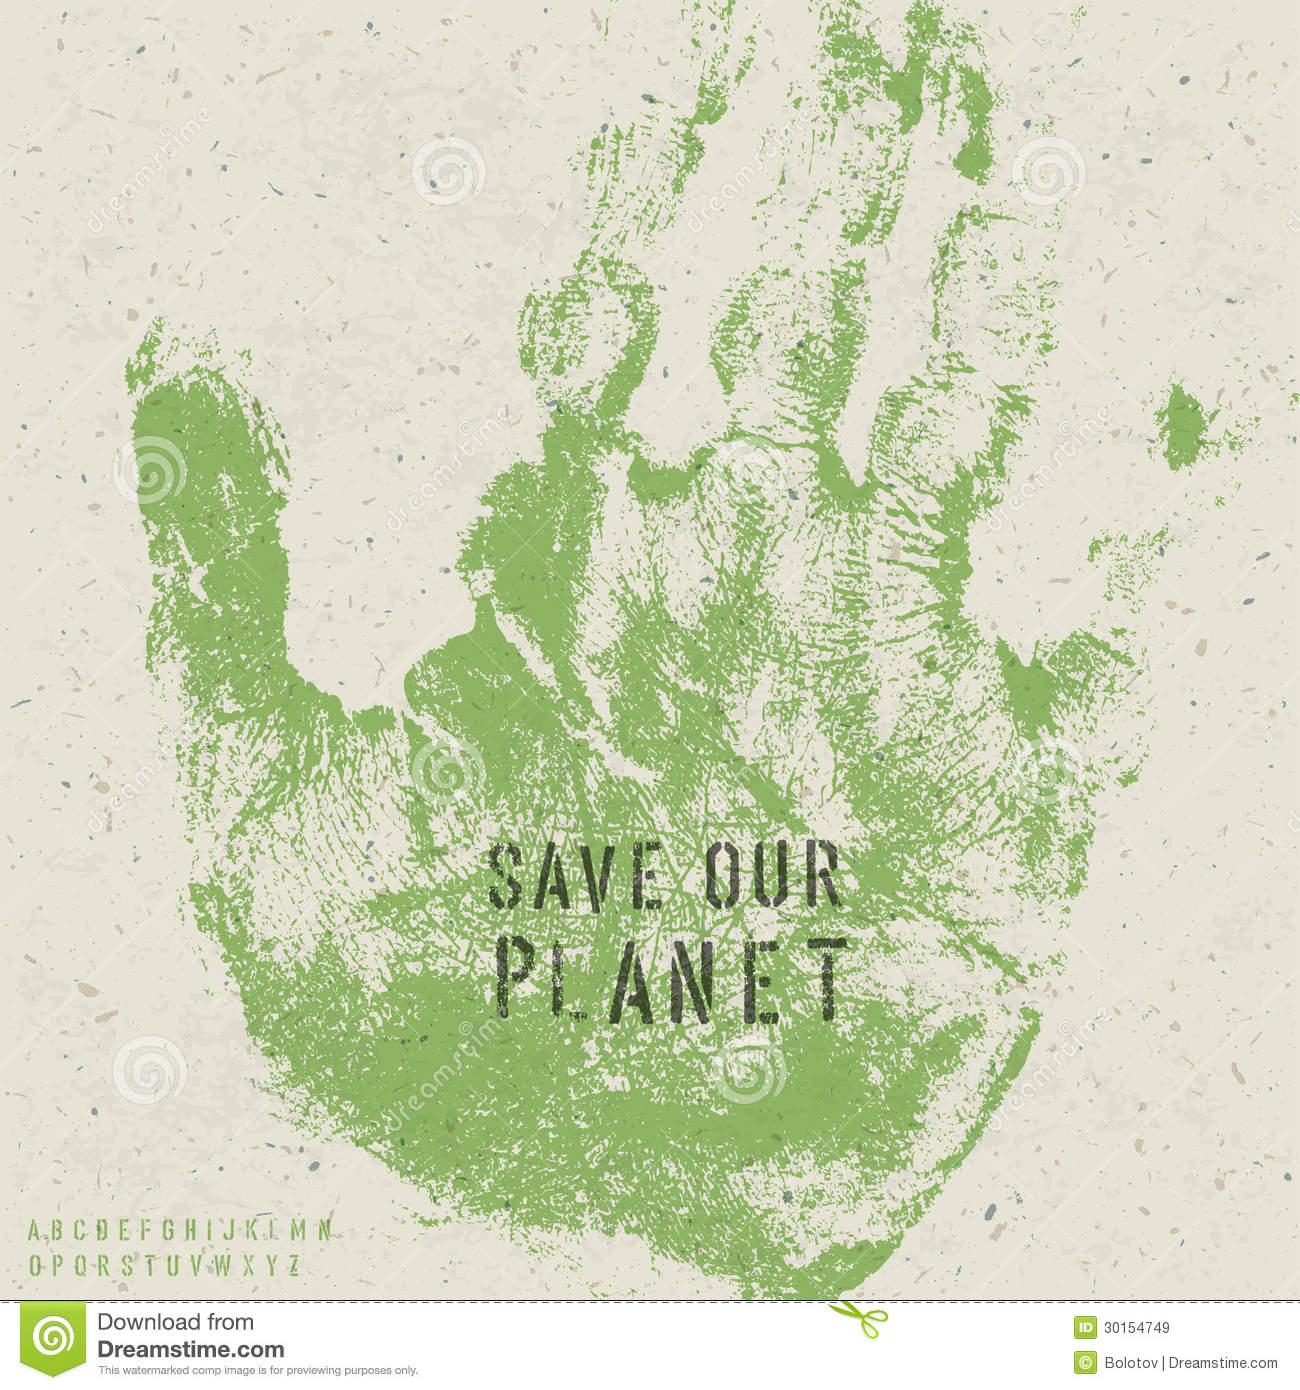 Save Our Planet Poster Royalty Free Stock Images